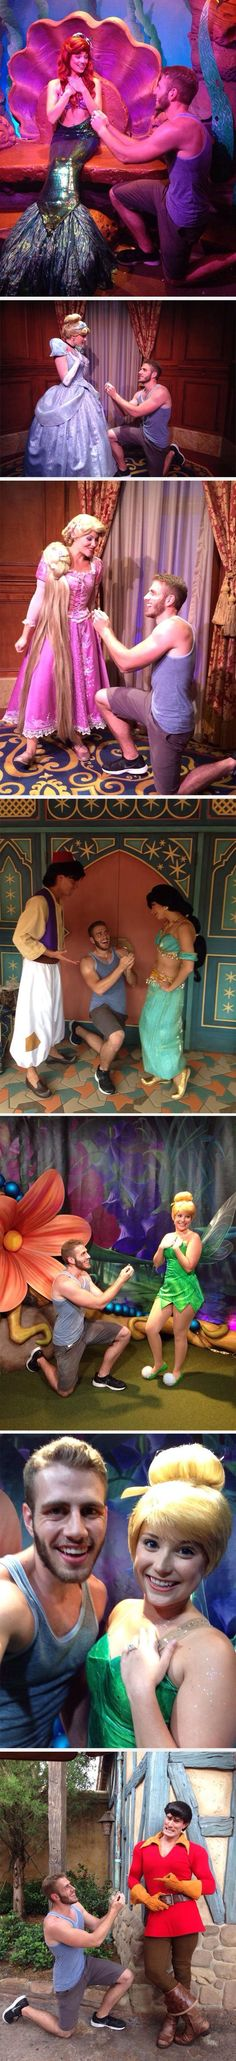 This Man Proposed To Disney, so much yes to the last one